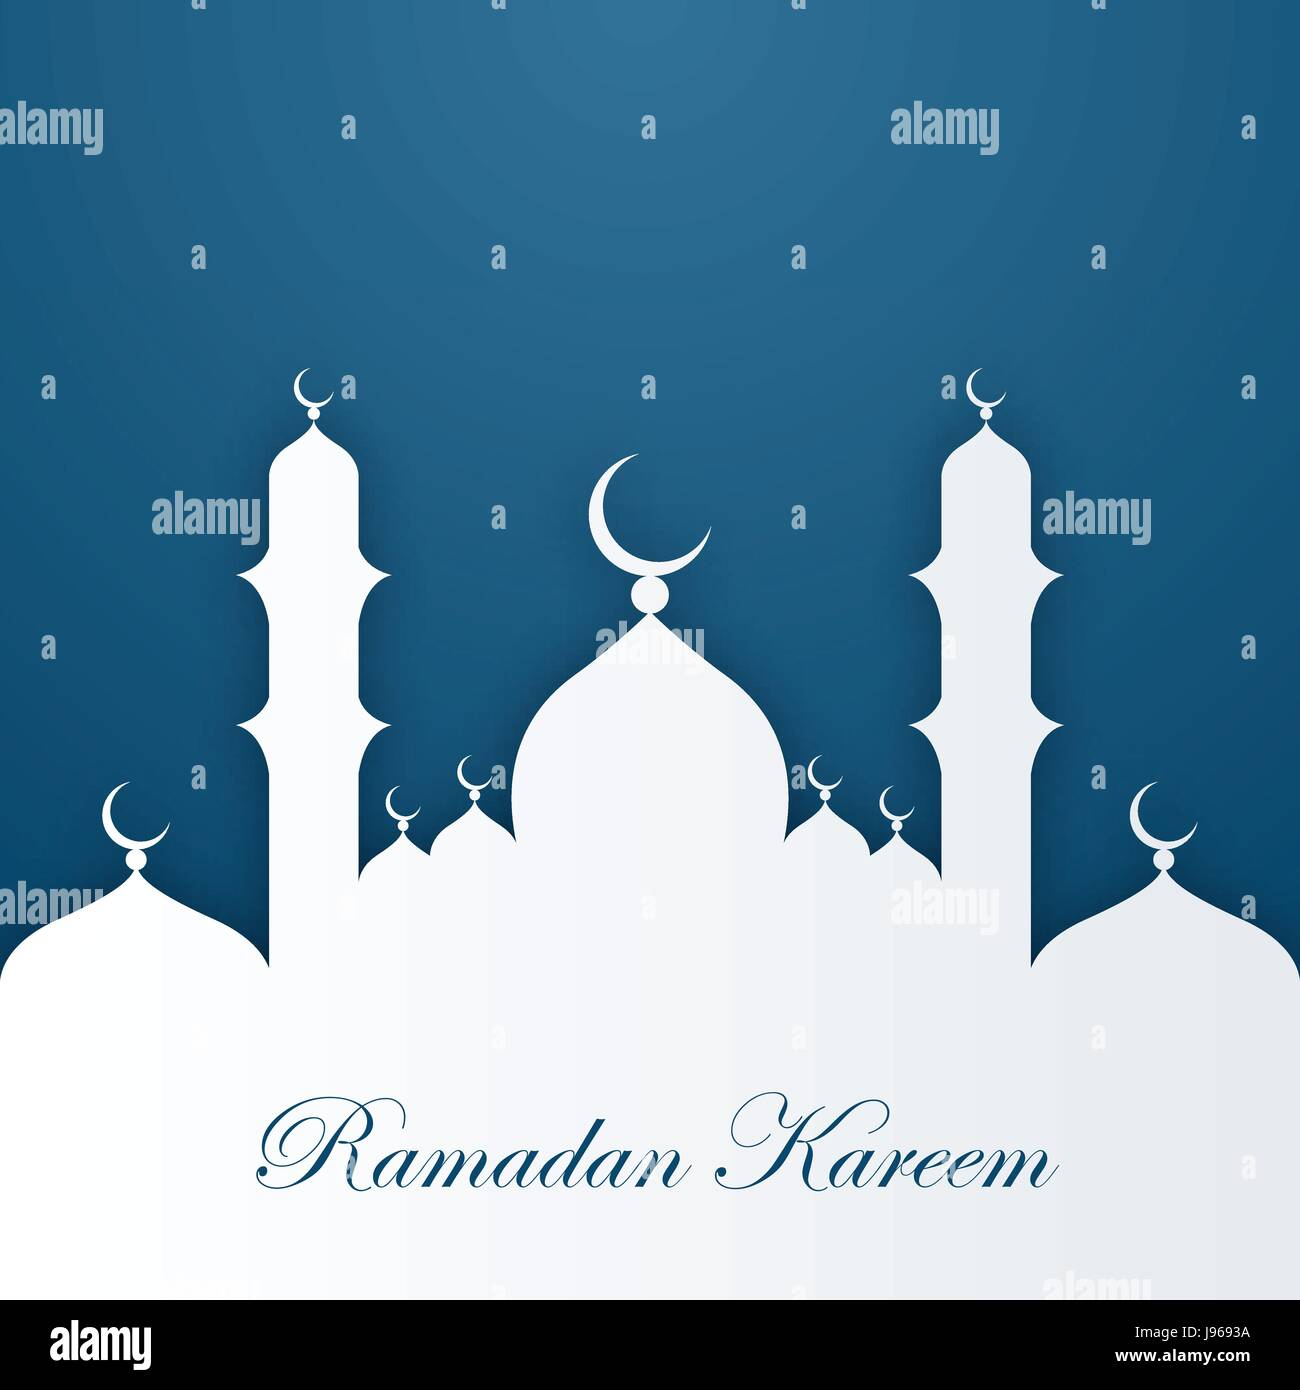 Ramadan Kareem Greeting Card Template Stock Vector Art